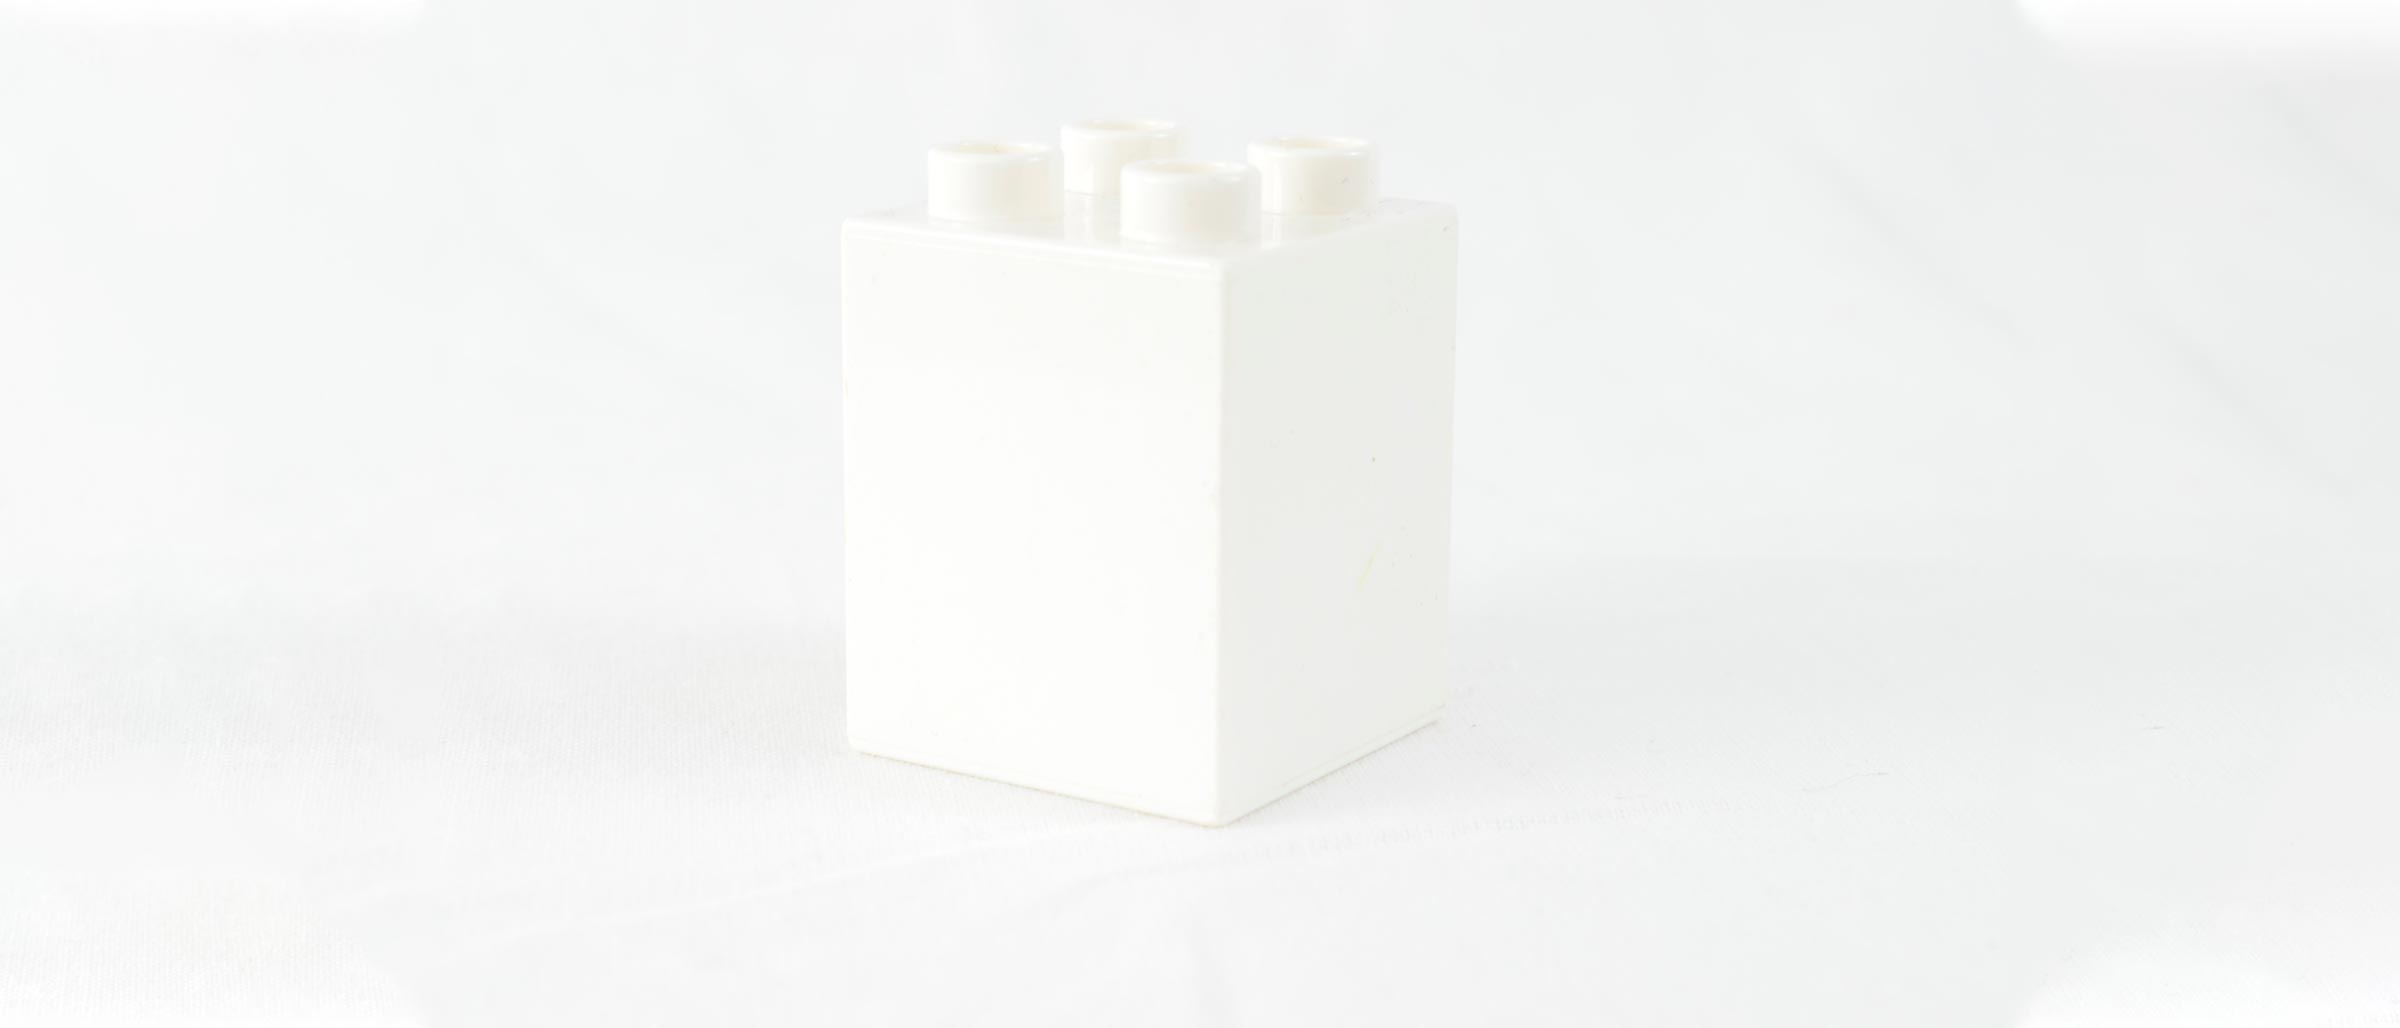 a white lego brick on a white background - showing that everyone starts from a blank canvas